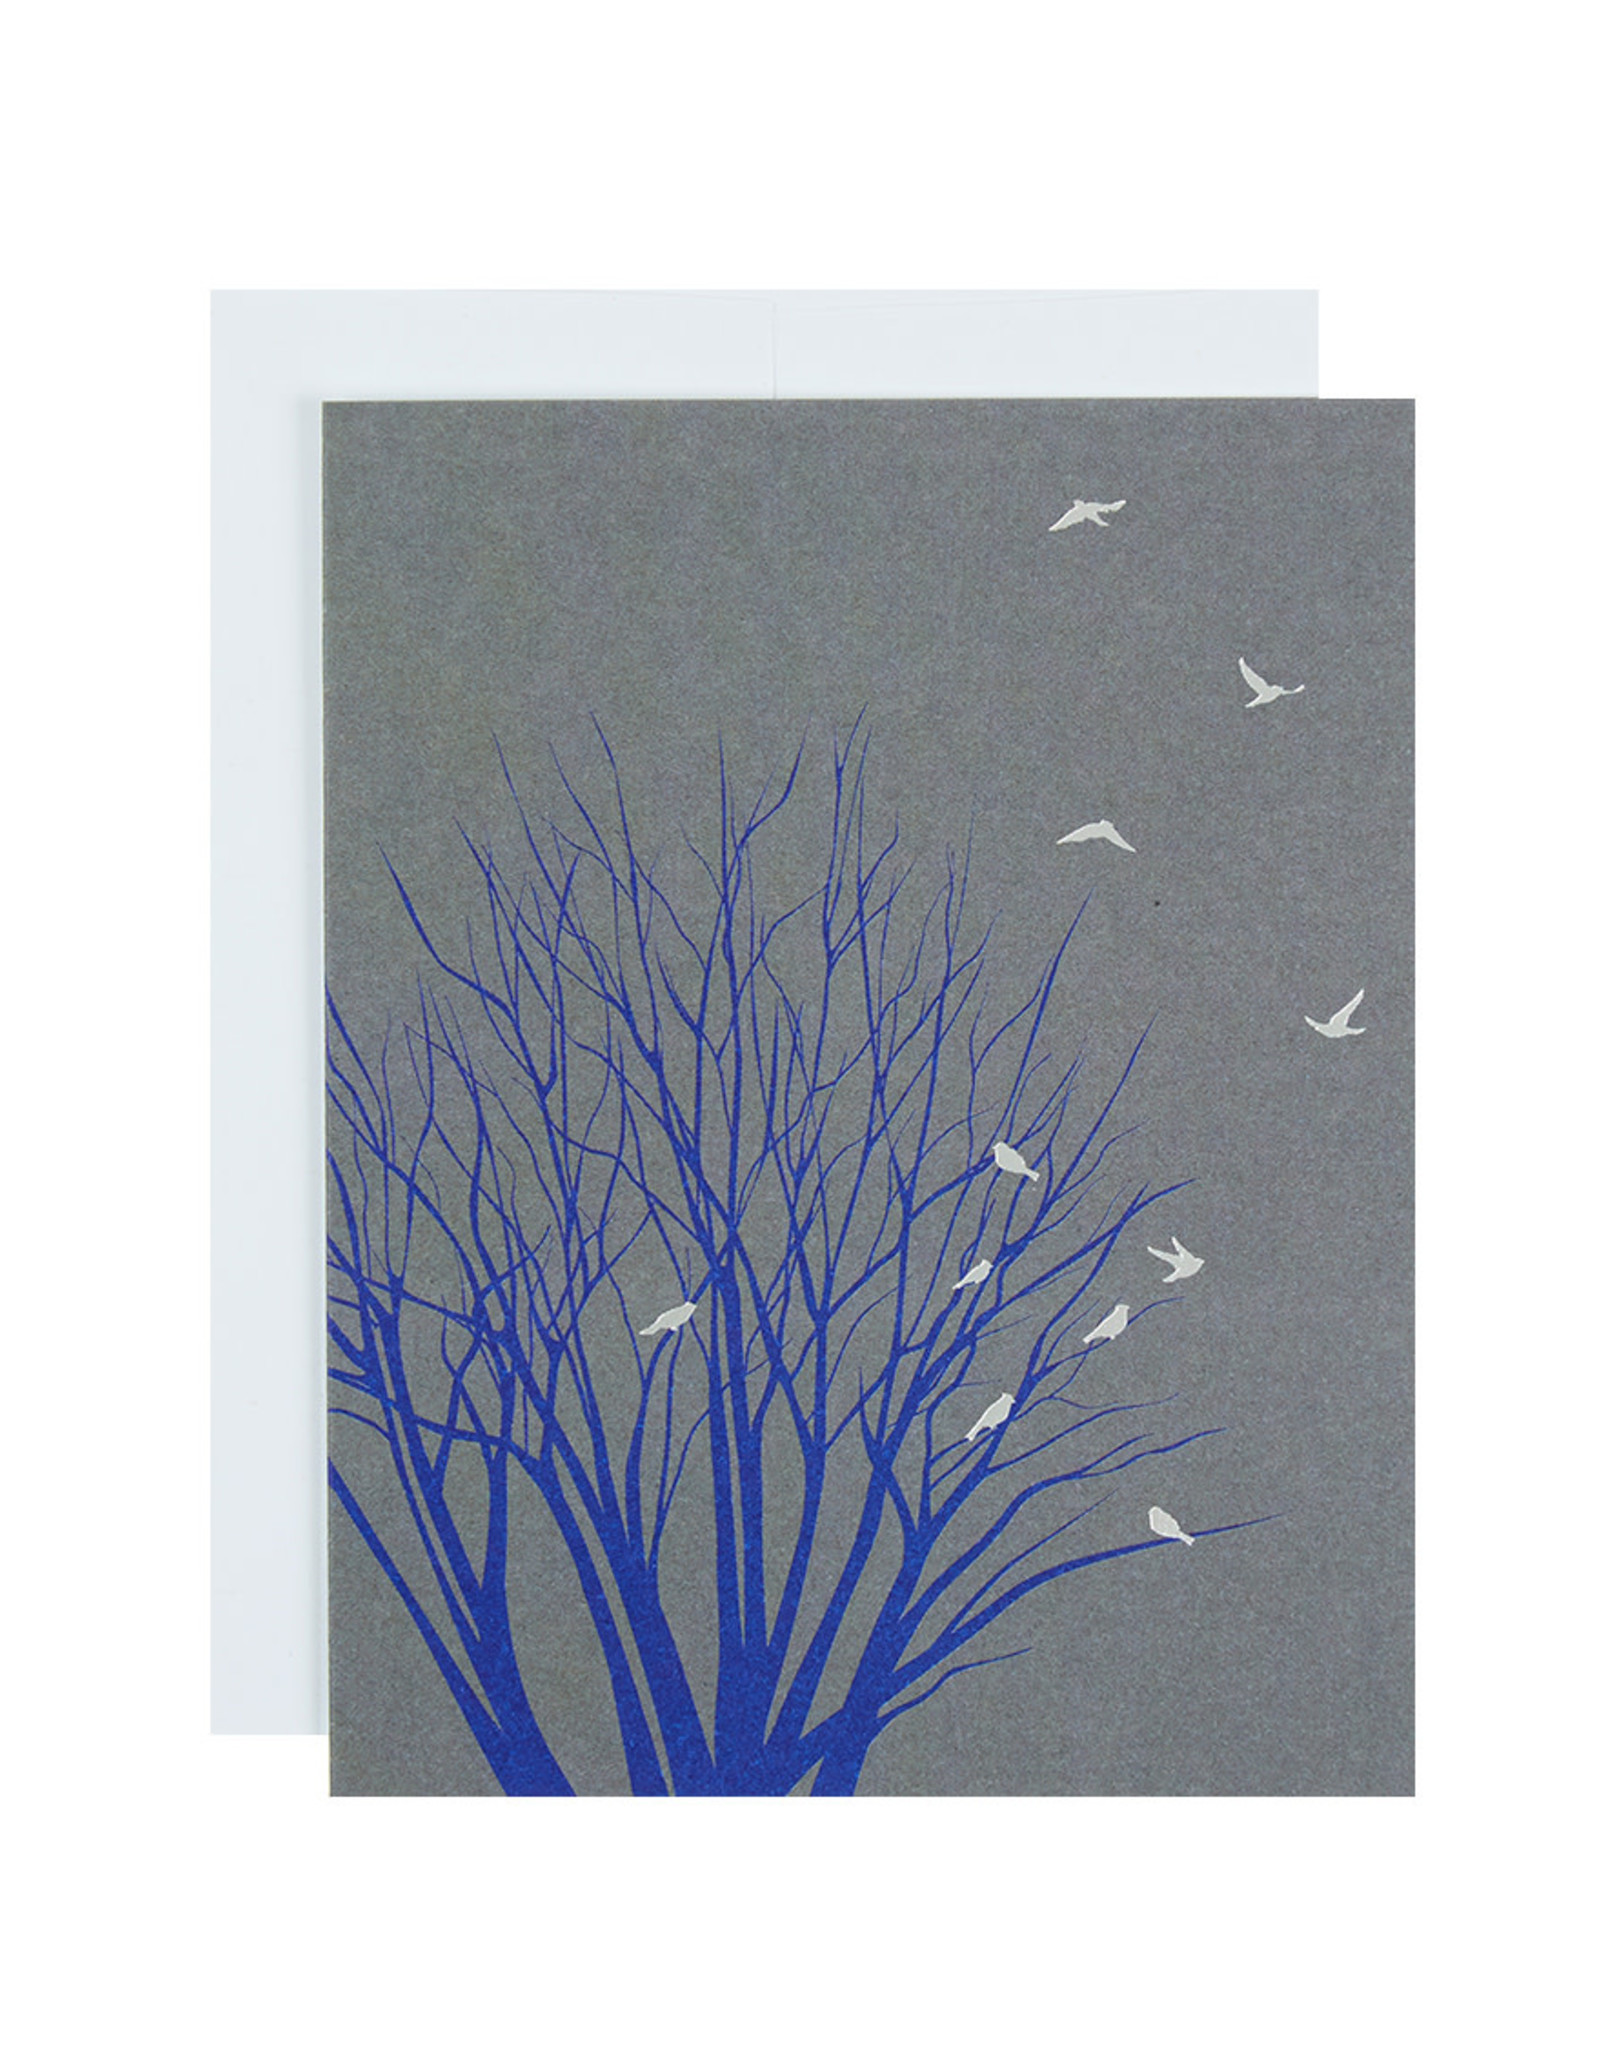 Michael Roger Tree with Birds Blank Greeting Card  by Michael Roger